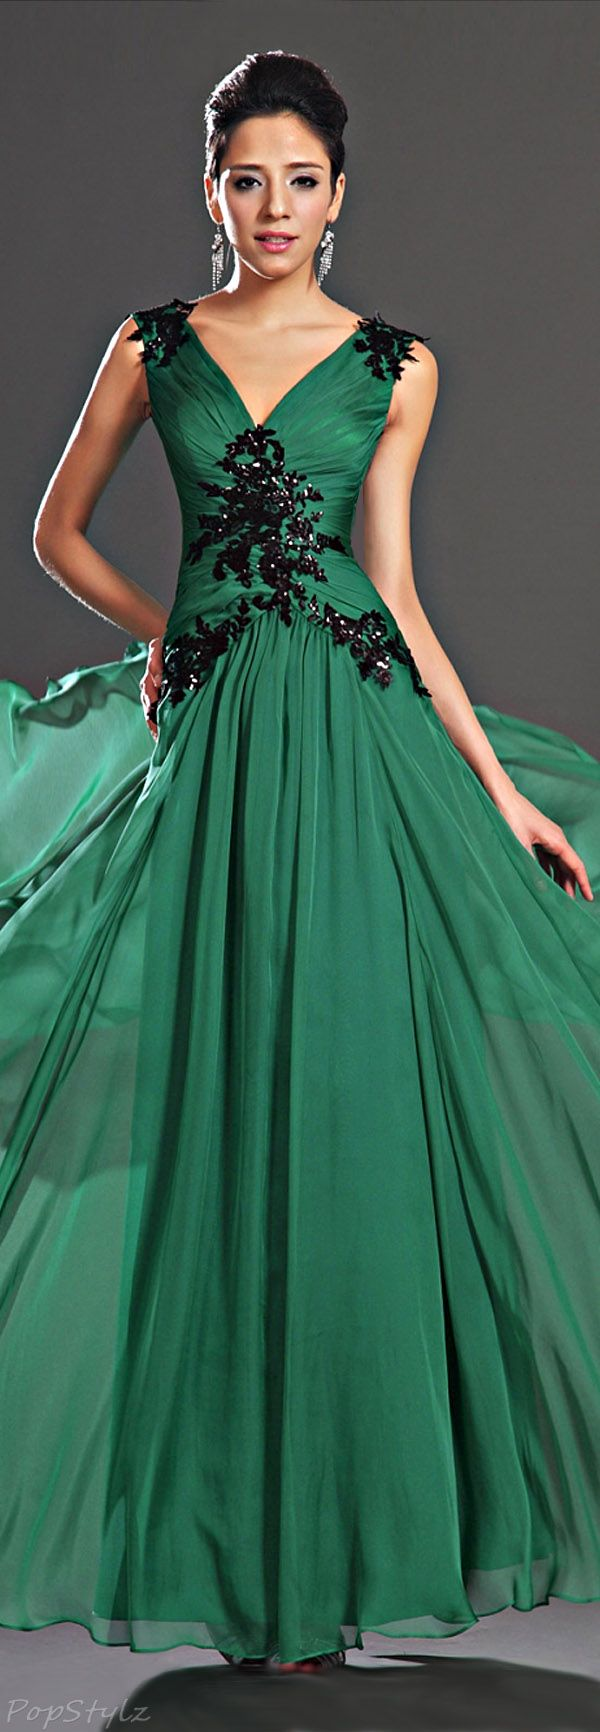 eDressit 00132504 Evening Gown 109 dollars available on Amazon.